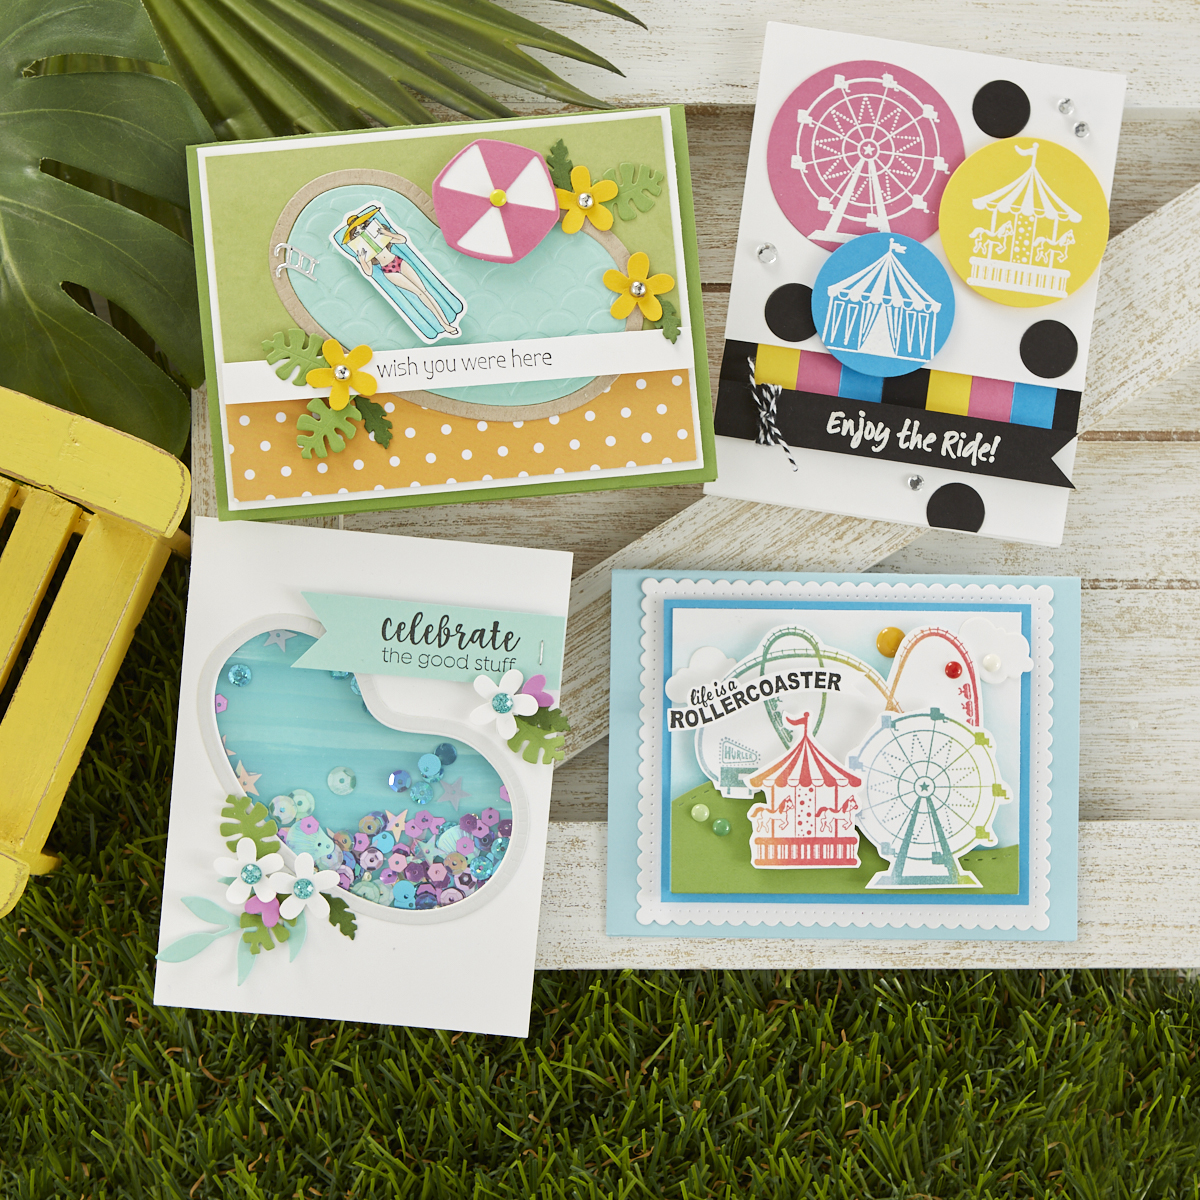 Four summer fun cardmaking ideas made with the Happy Place Project Kit from FSJ